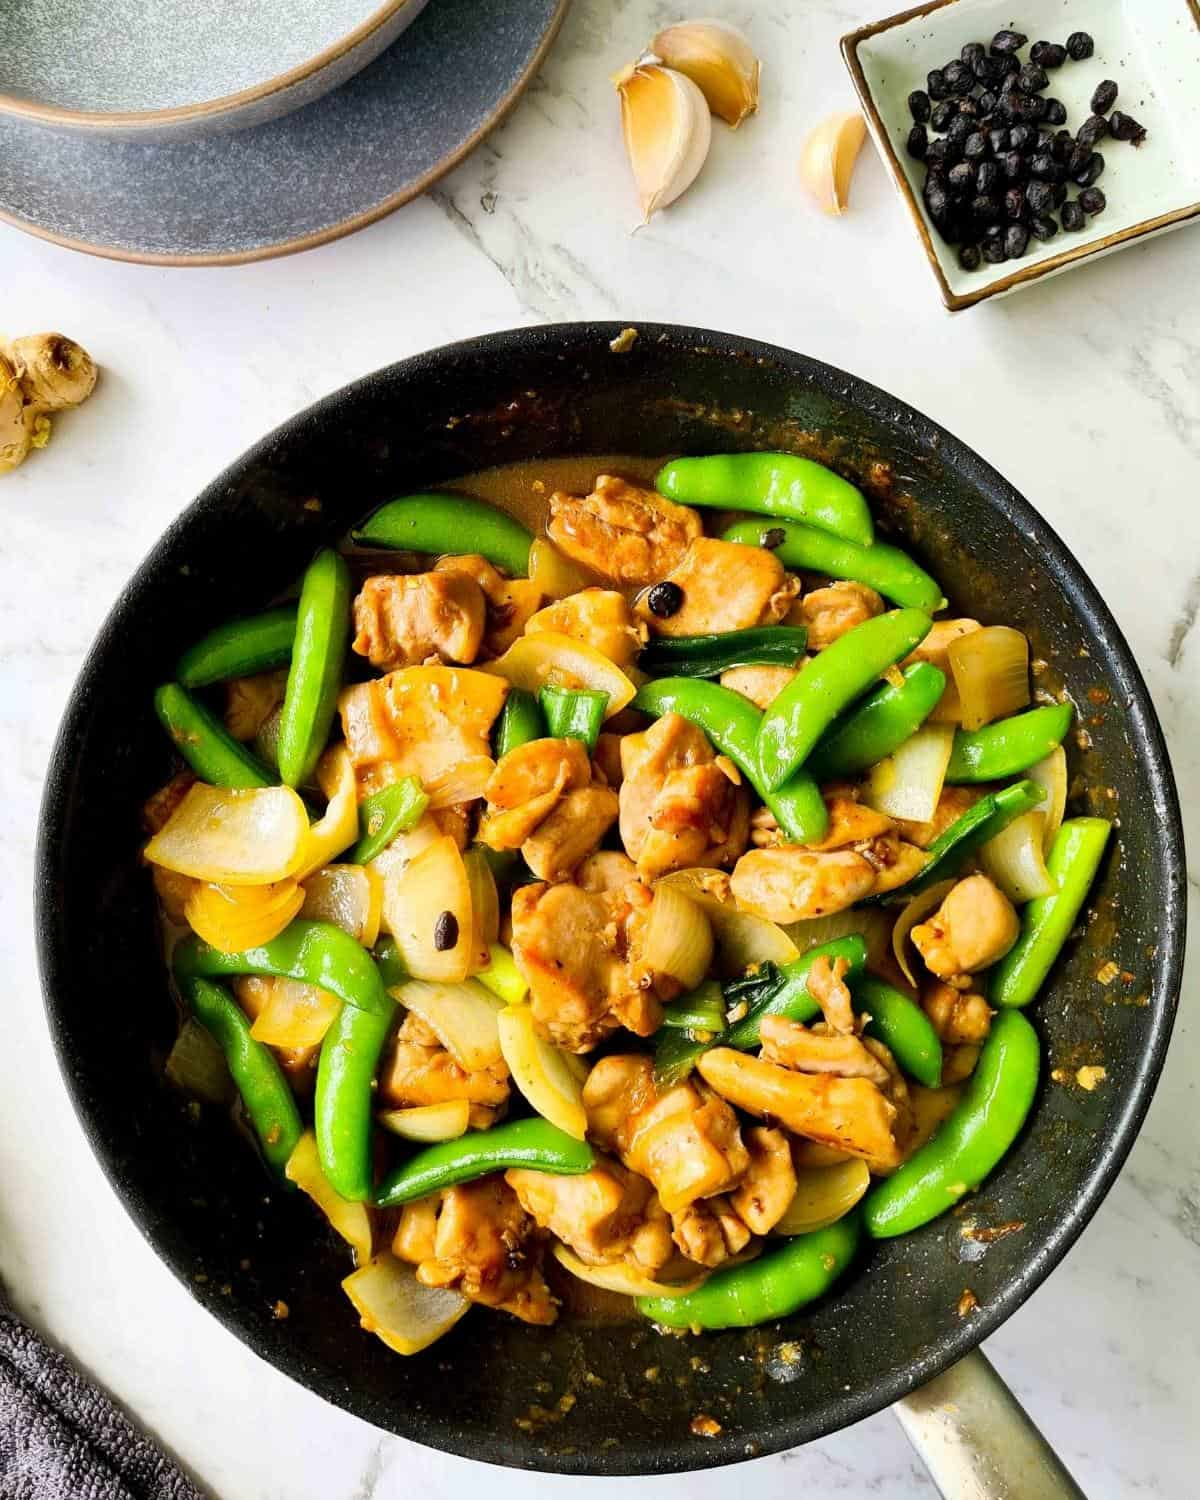 Chicken black bean sauce with sugar snap peas in a small pan